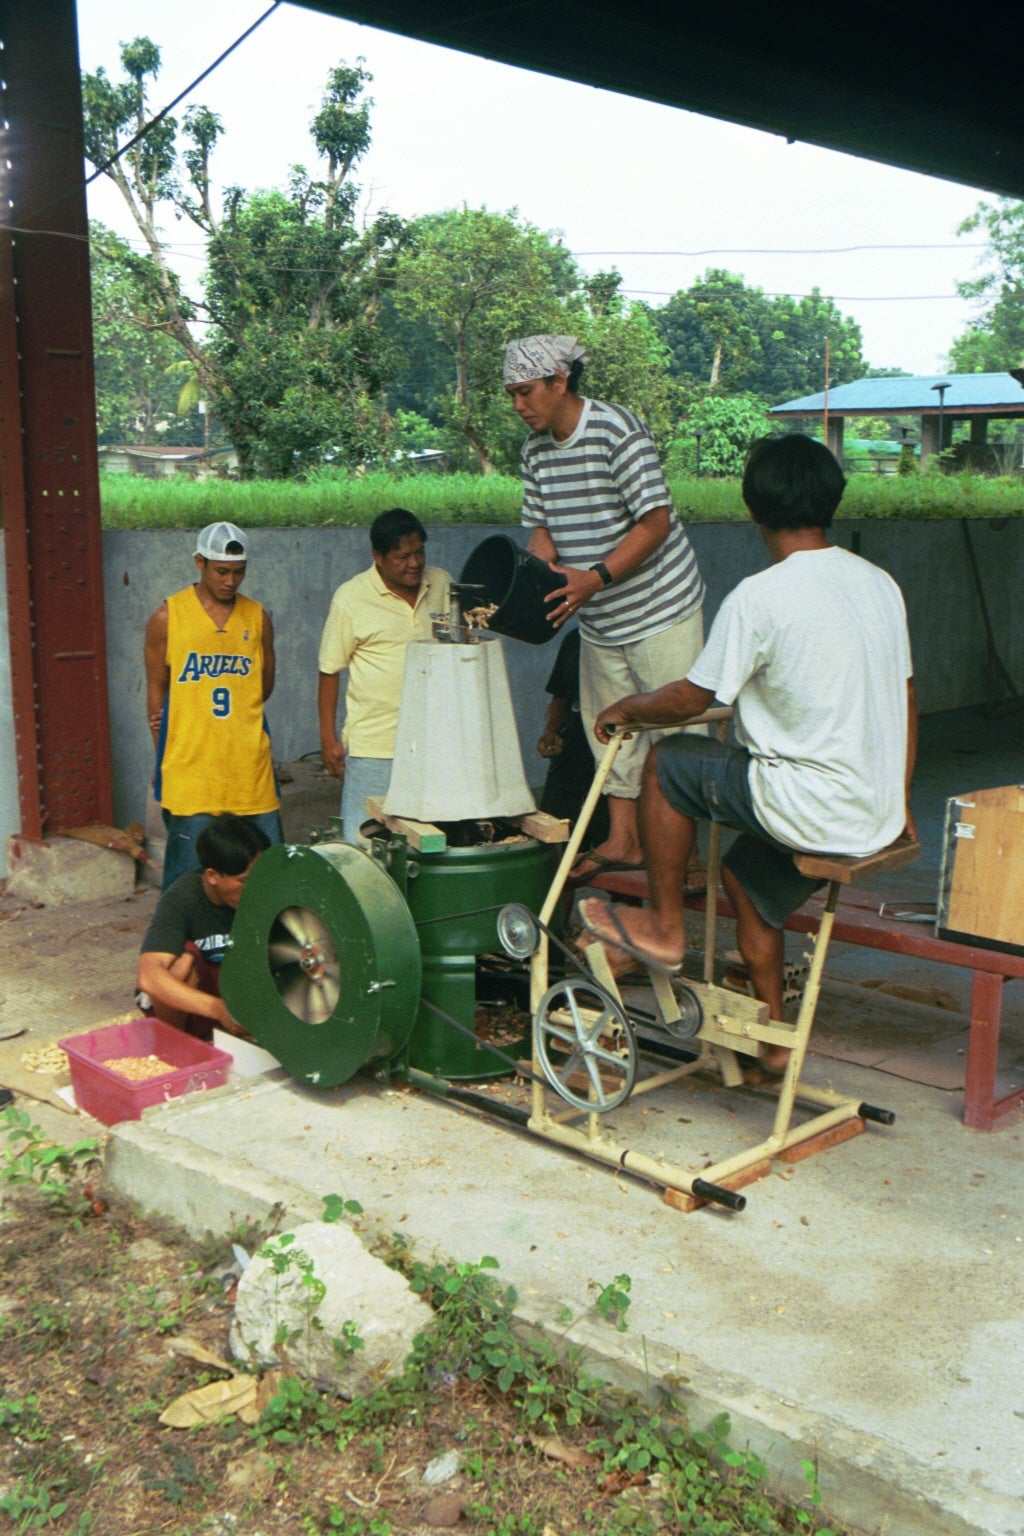 Pedal Powered Agricultural Center (Coming Soon to an Instructable Near You)